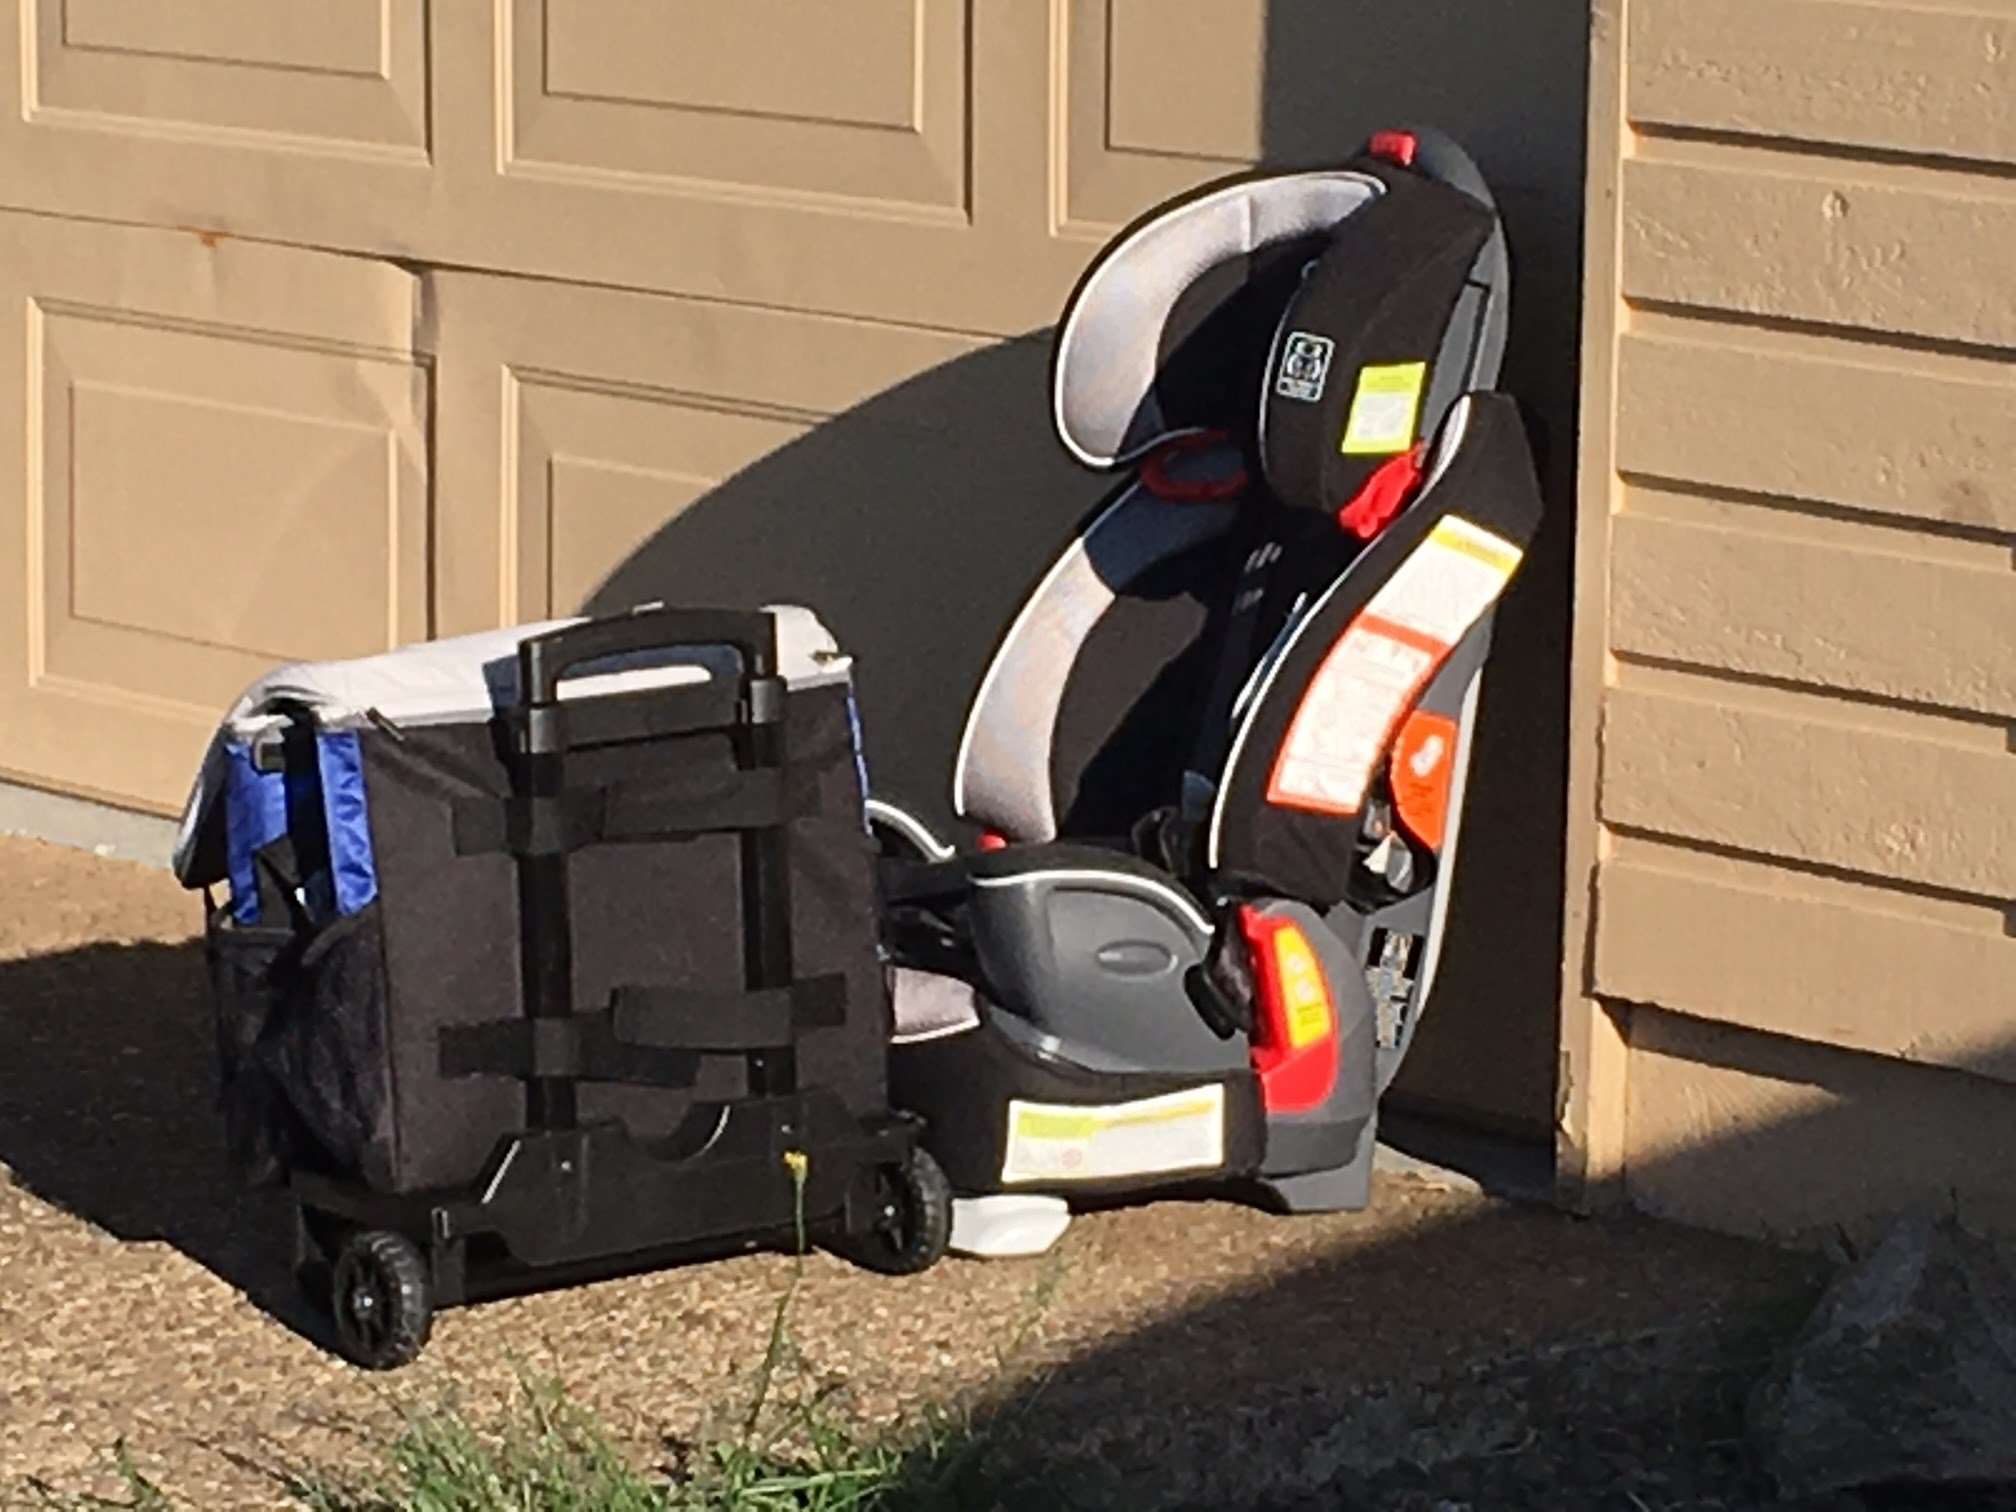 A carseat and cooler bag on wheels: the only stolen items recovered in the stolen truck Tuesday. (KPTV)